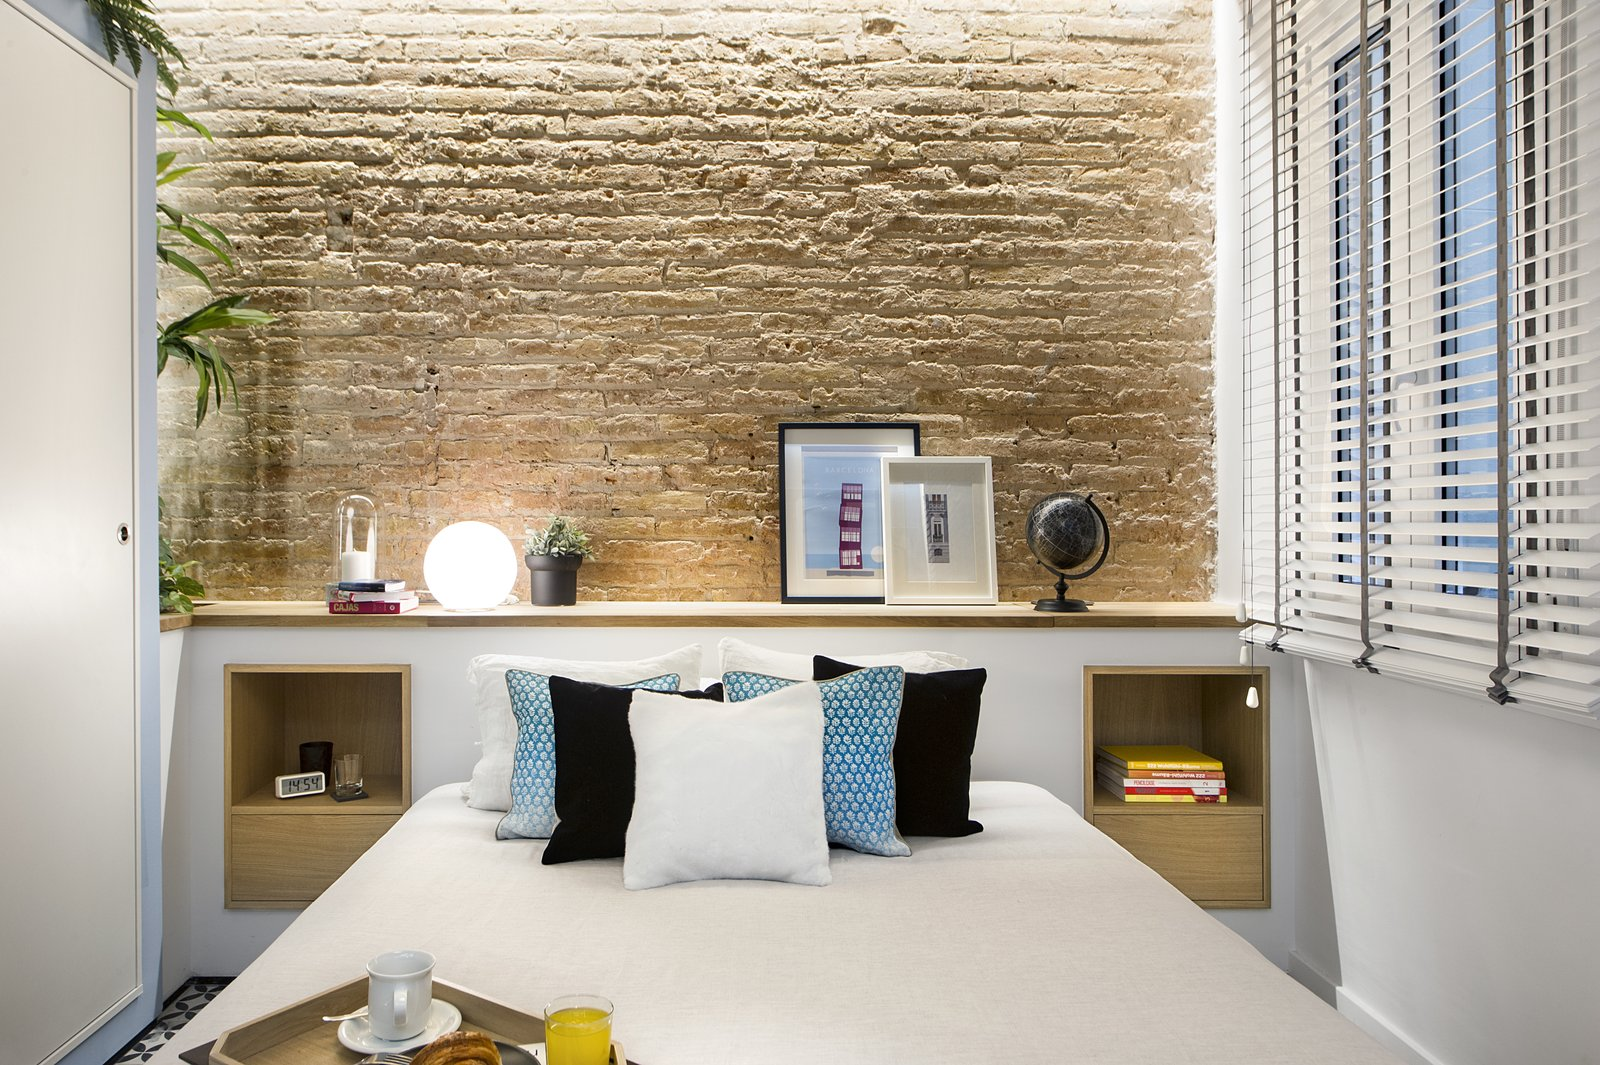 Tagged: Bedroom, Shelves, Table Lighting, Bed, and Porcelain Tile Floor. A Smart Layout Maximizes Space in This Compact Urban Beach Apartment in Barcelona - Photo 7 of 11